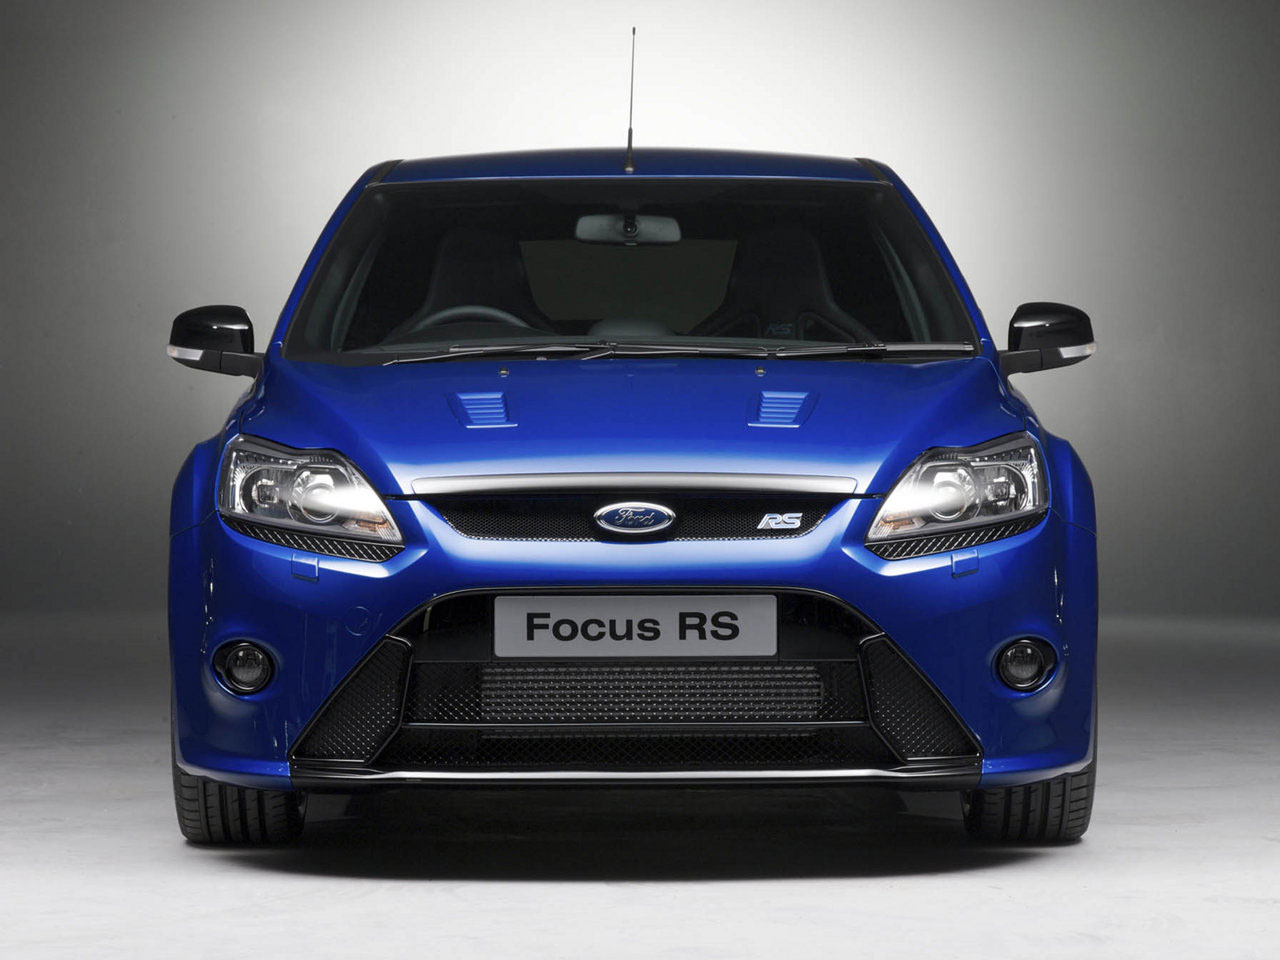 Gallery FORD Ford Focus RS 2009 Ford Focus RS wallpapers 1280x960